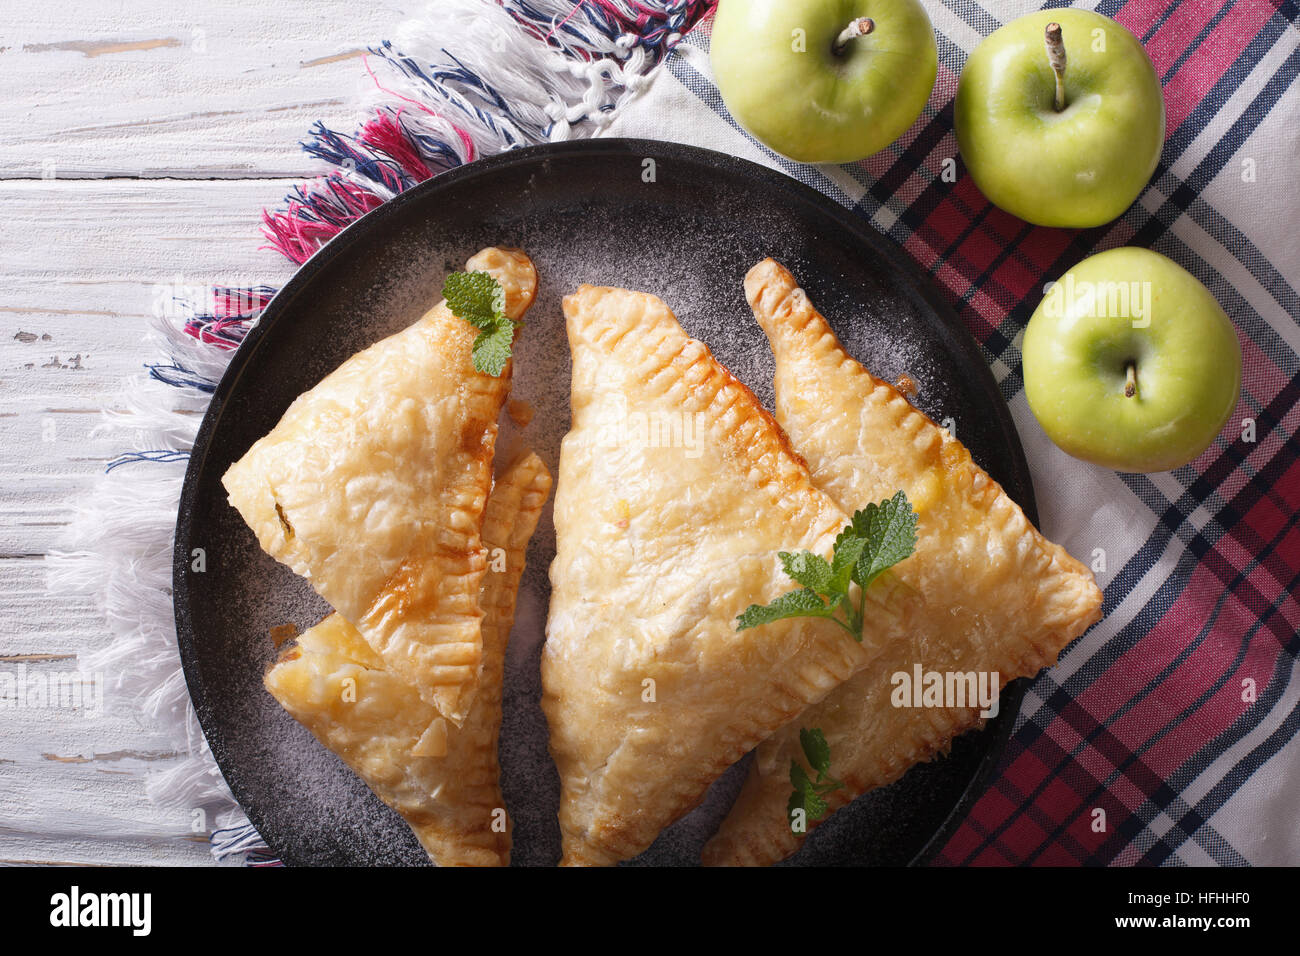 Delicious homemade apple pie turnover close-up on a plate. horizontal view from above - Stock Image